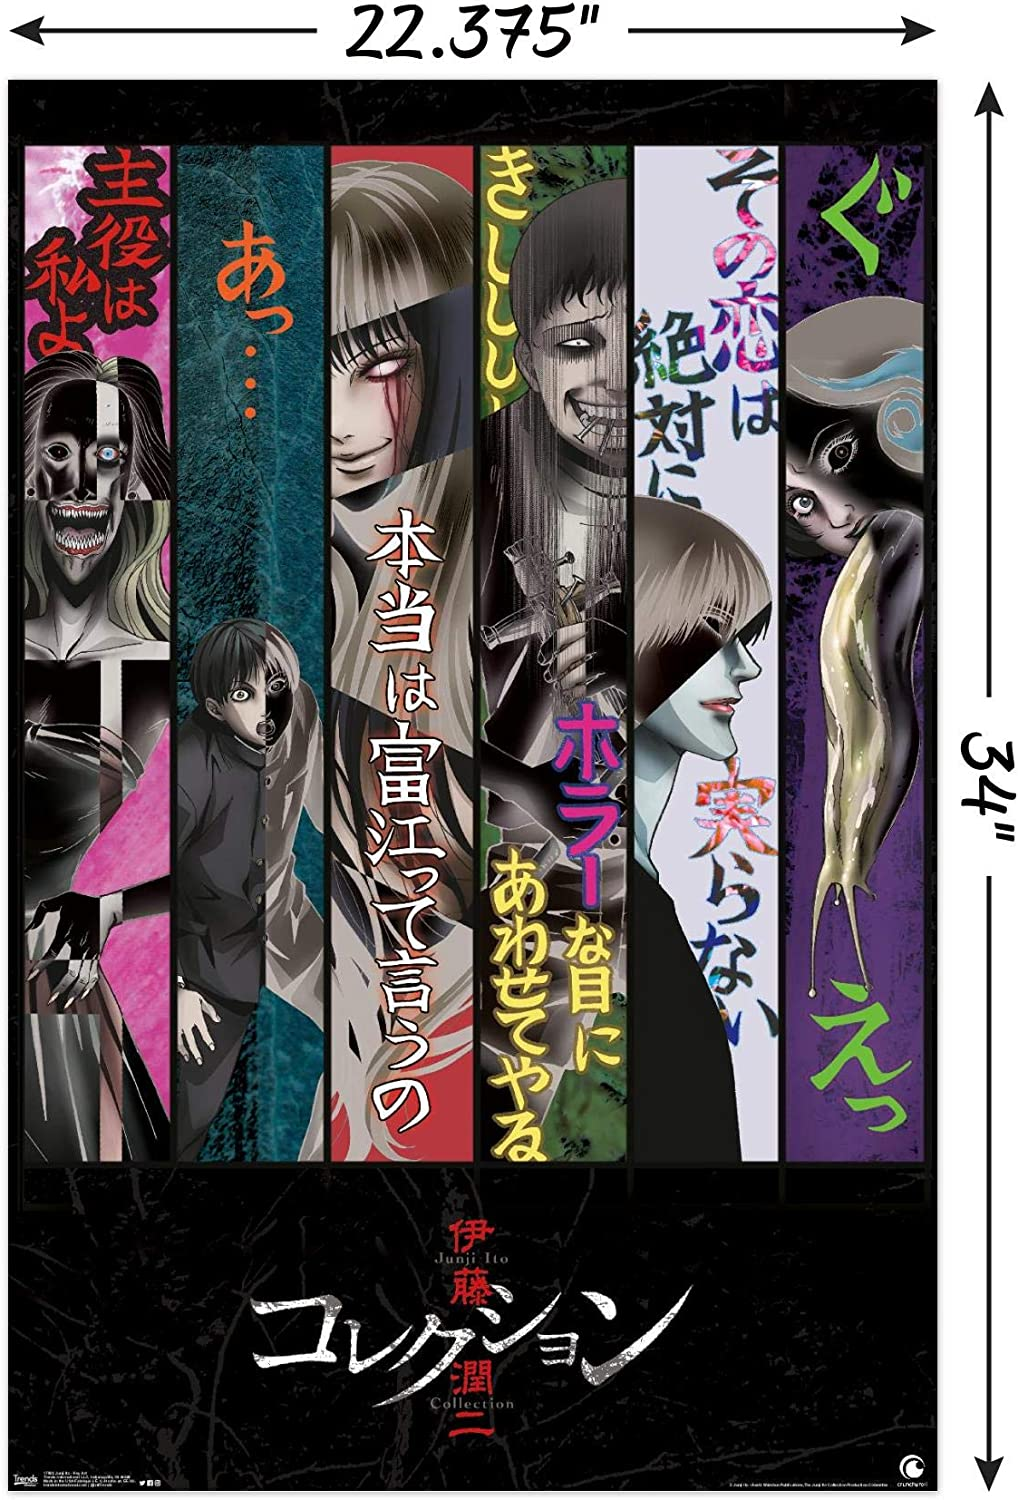 Amazon Com Trends International Junji Ito Key Art Mount Bundle Wall Poster 22 375 X 34 Multi Posters Prints